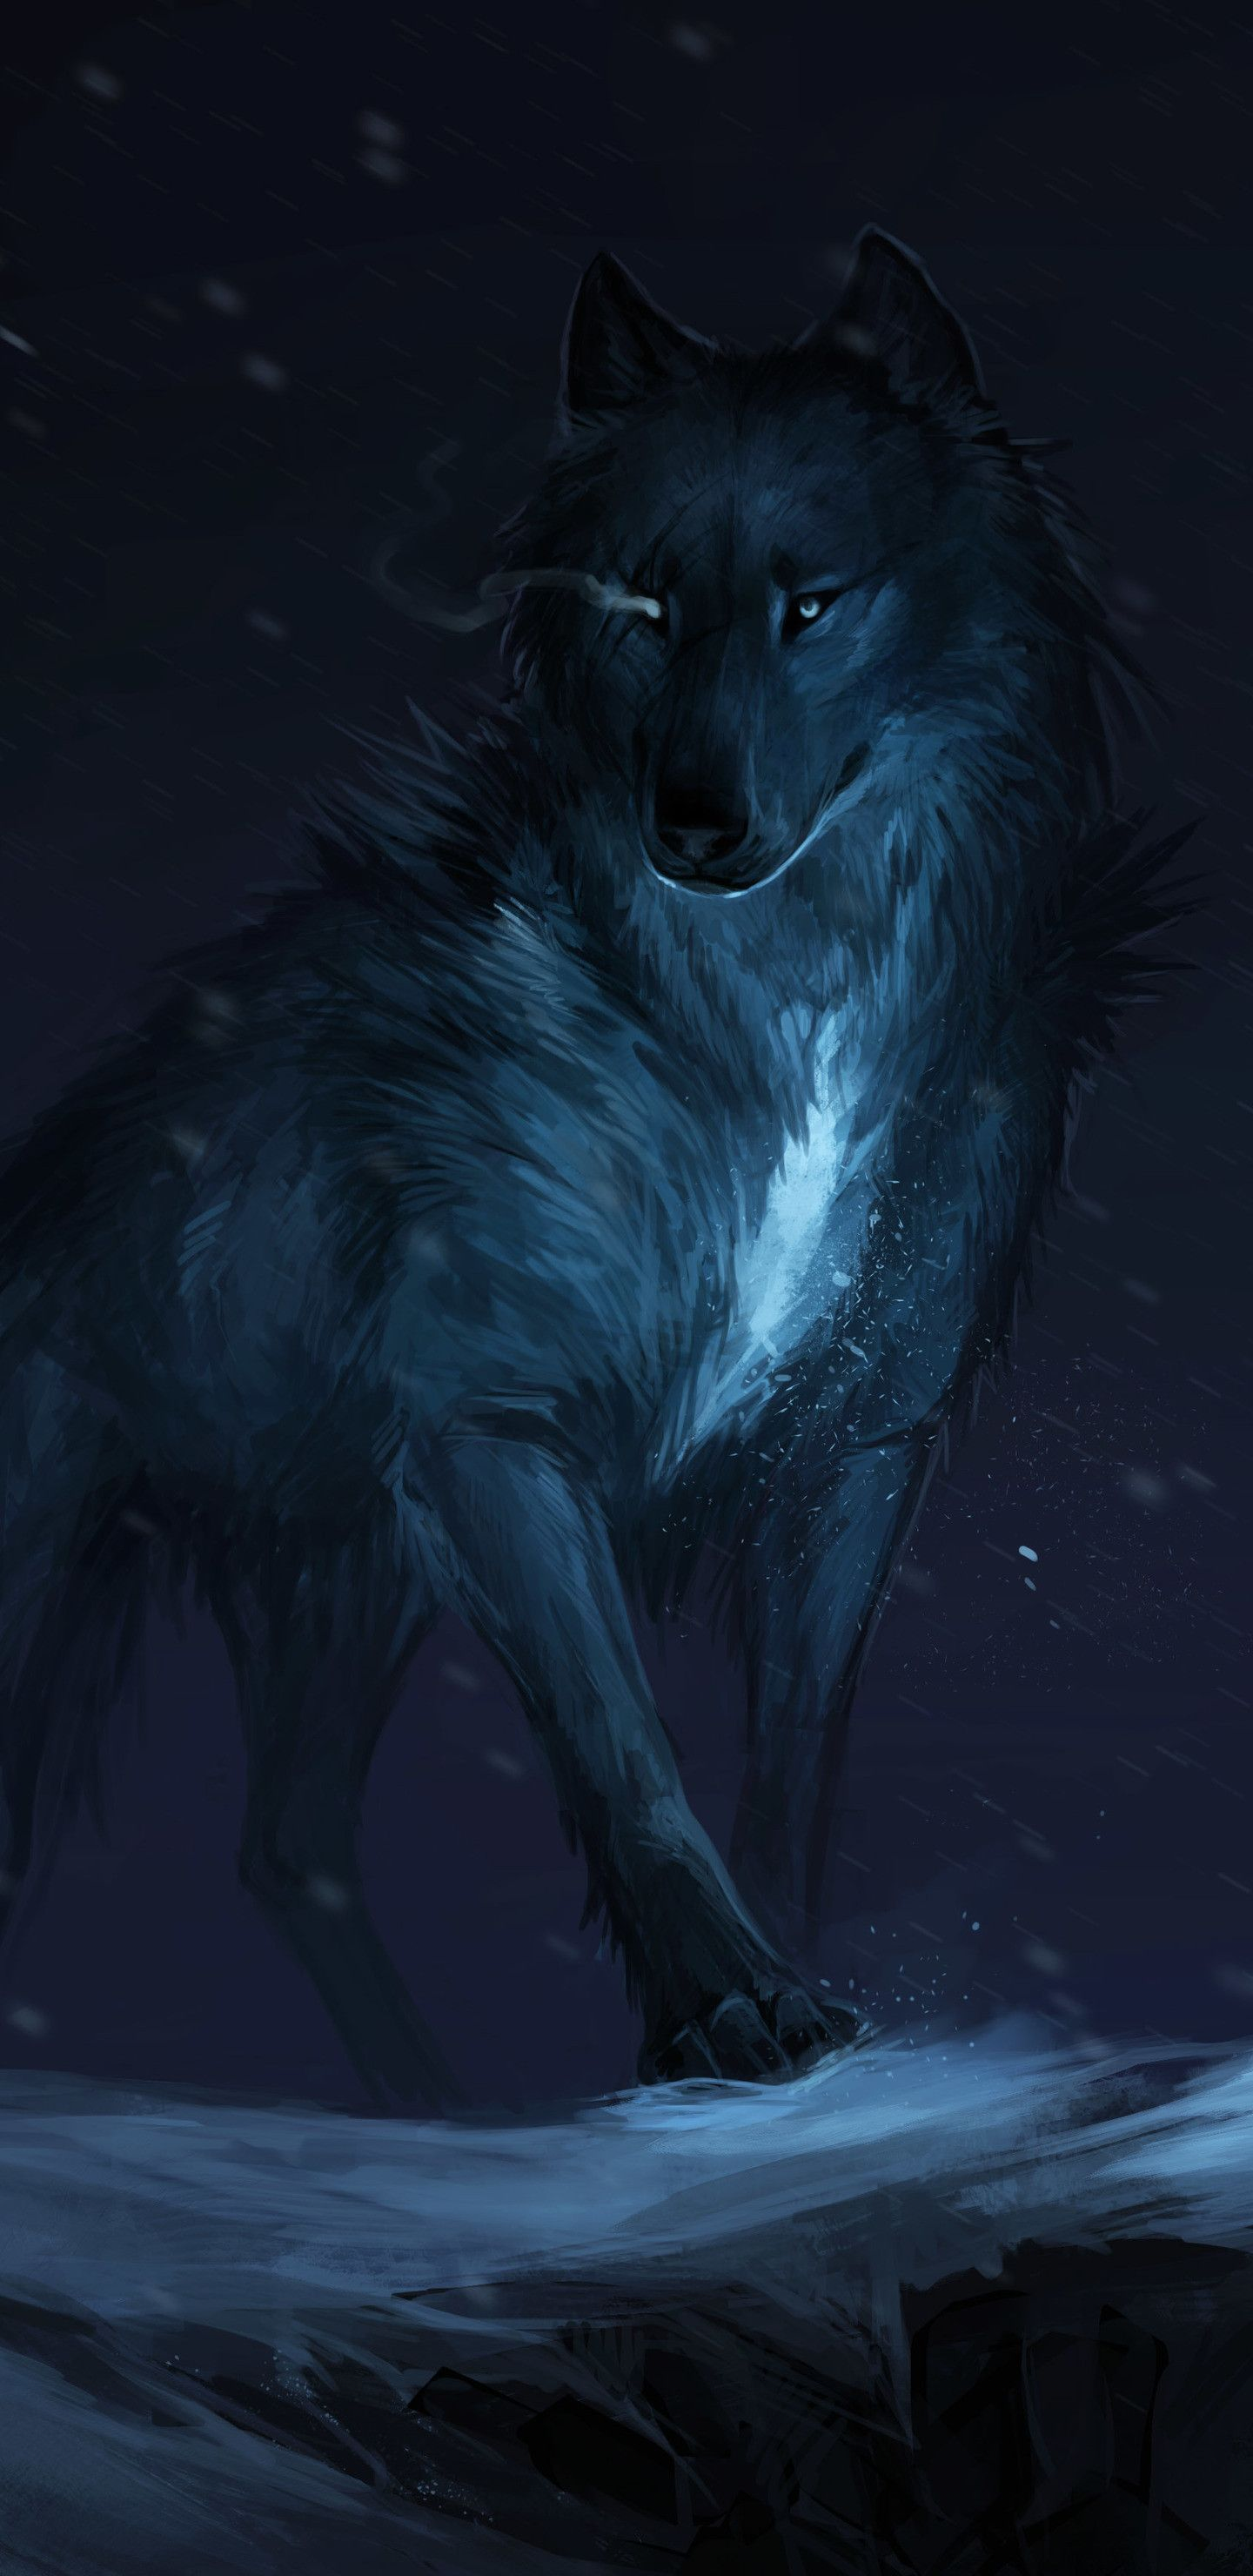 Mystical Wolf Wallpapers Top Free Mystical Wolf Backgrounds Wallpaperaccess